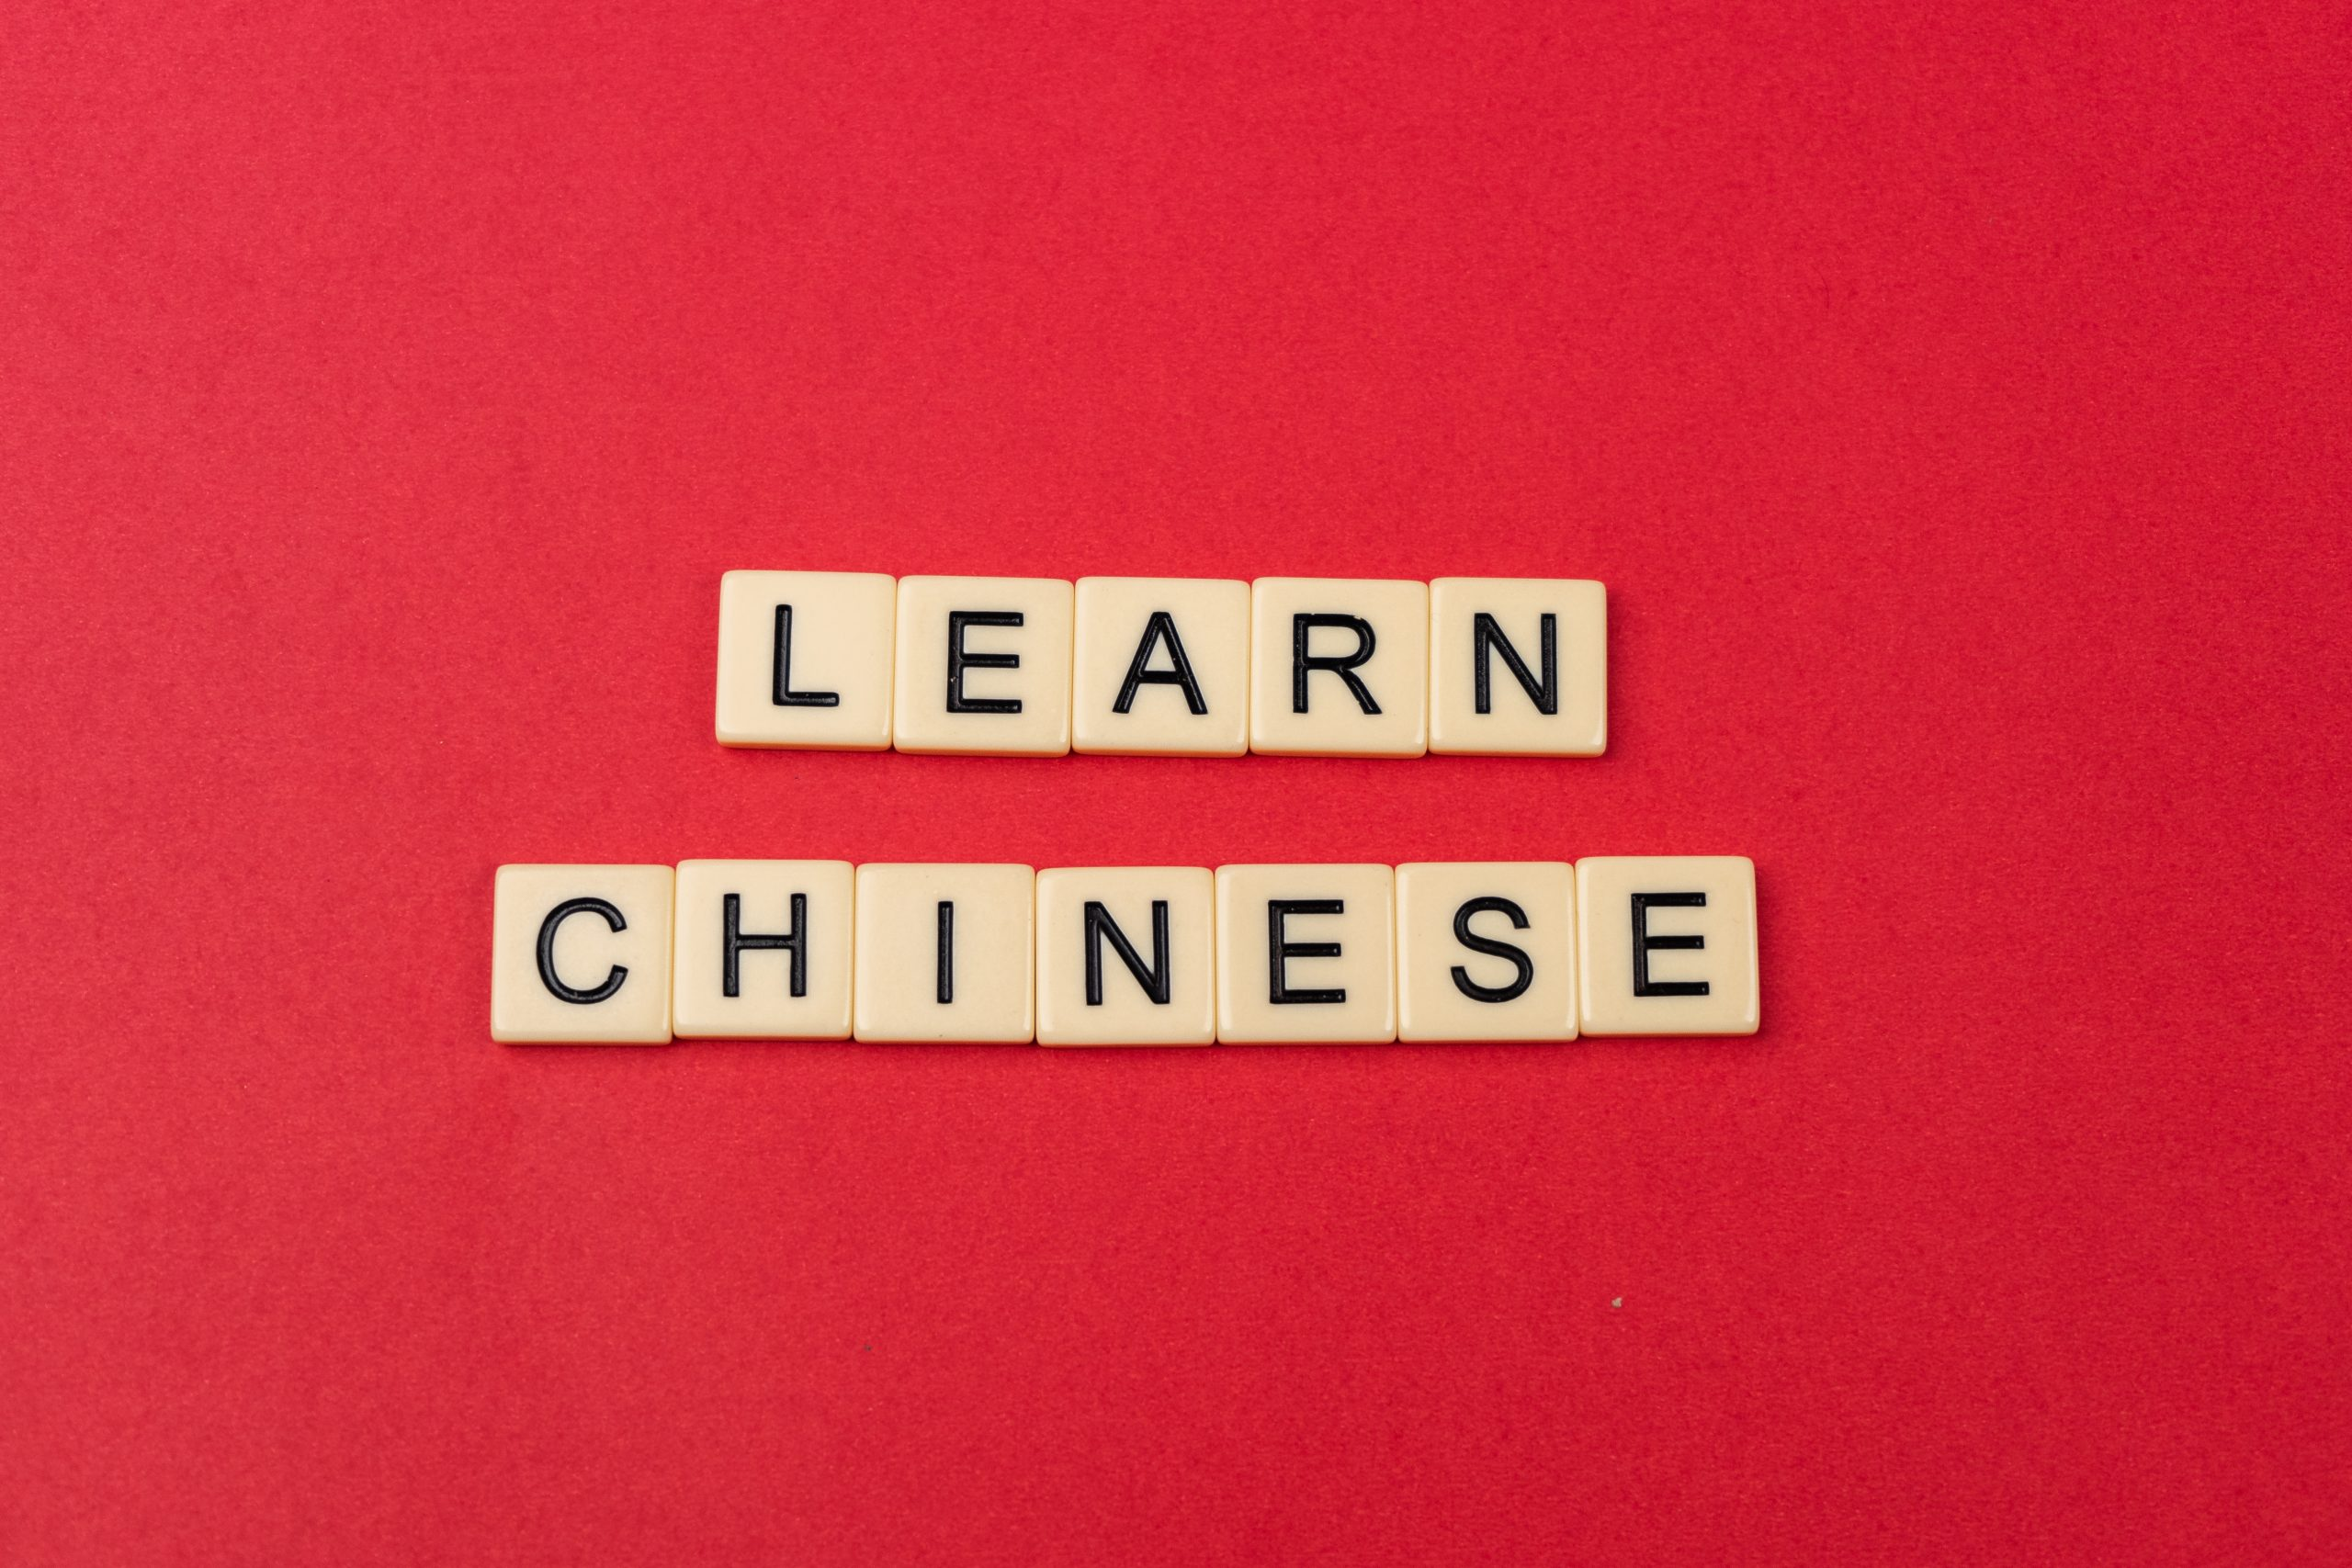 Learn Chinese written with scrabble